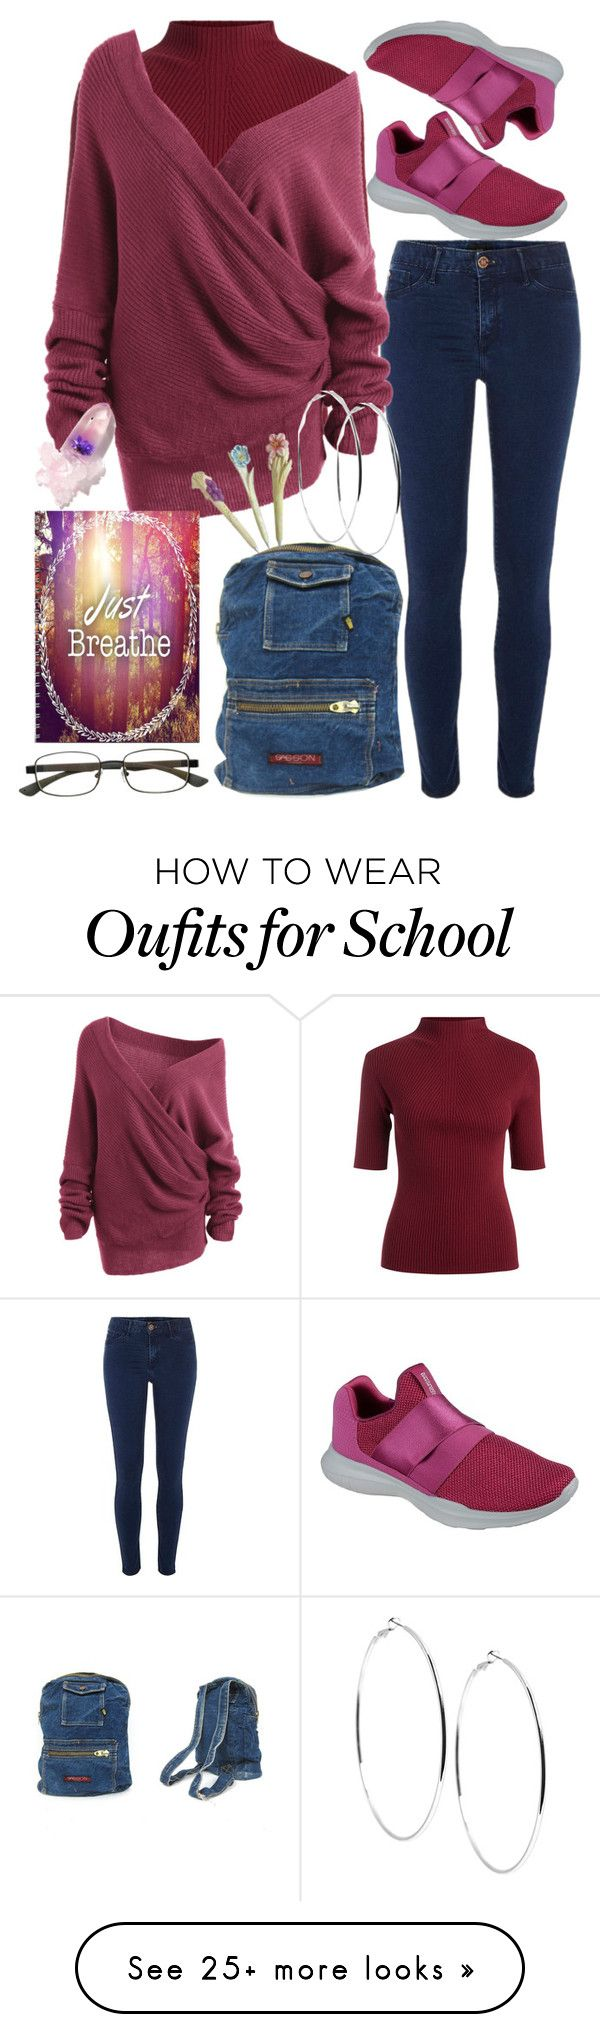 """""""Just breathe girl, you'll do fine..i promise"""" by mariamehau on Polyvore featuring River Island, Skechers, Select-A-Vision, Winky Lux and GUESS"""